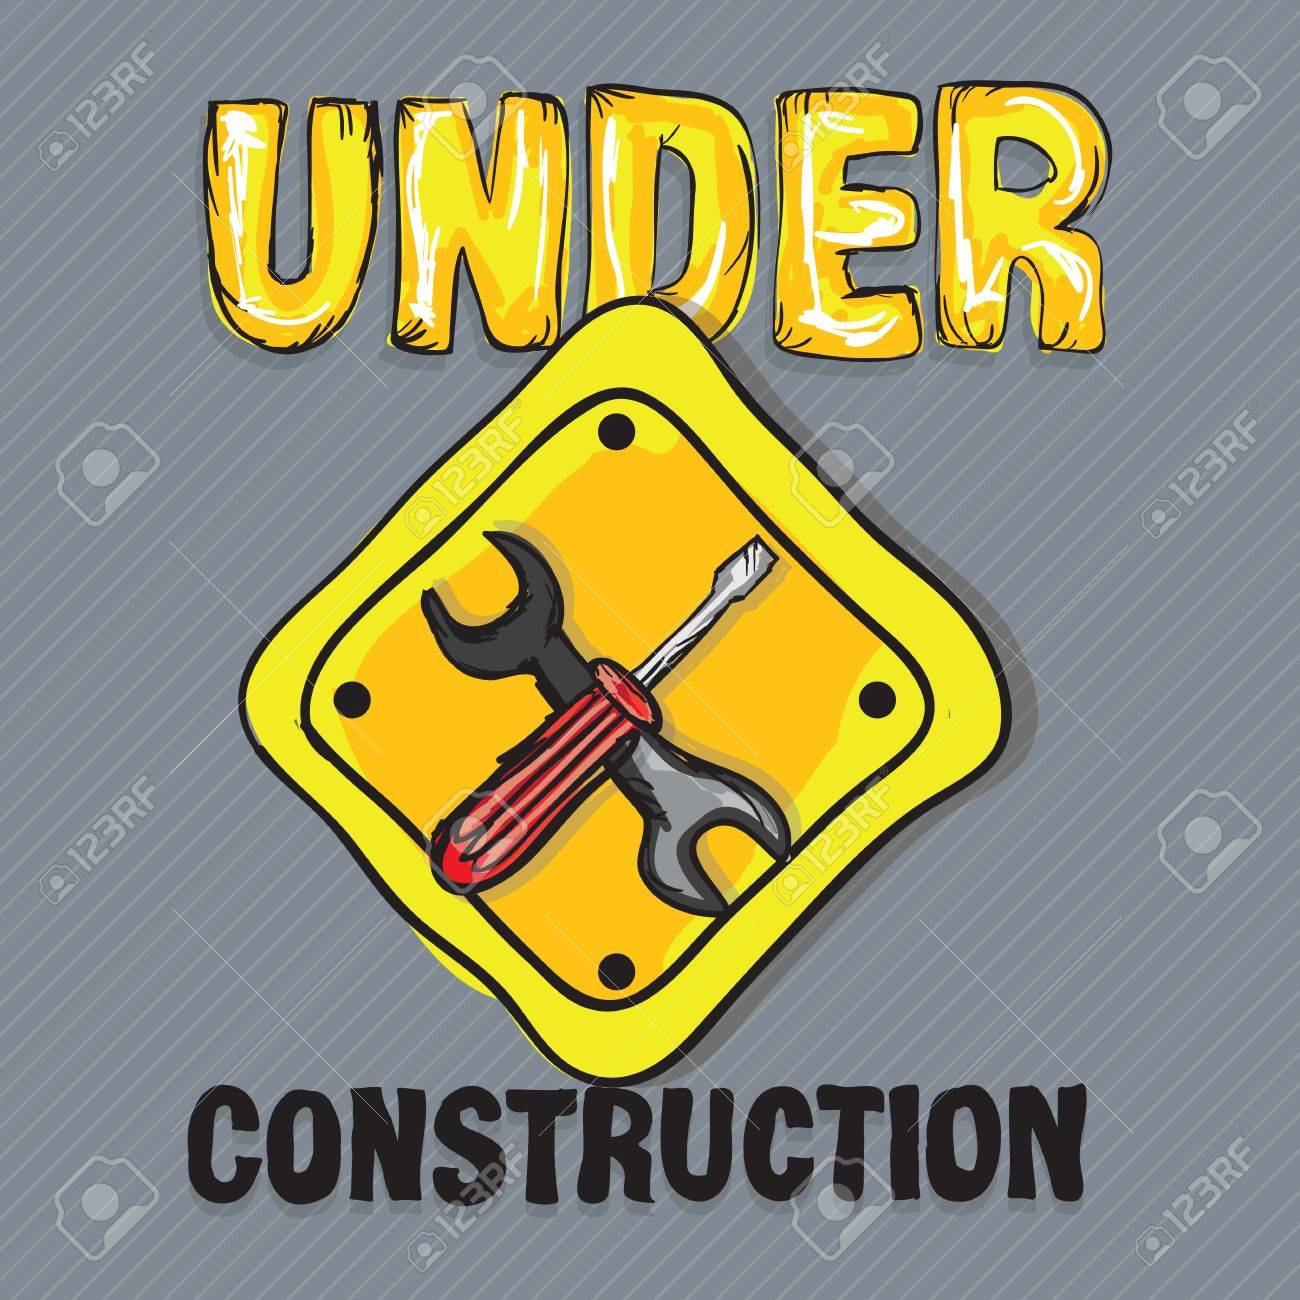 Construction Icons (screwdriver, wrench), Vector illustration Stock Vector - 17978490